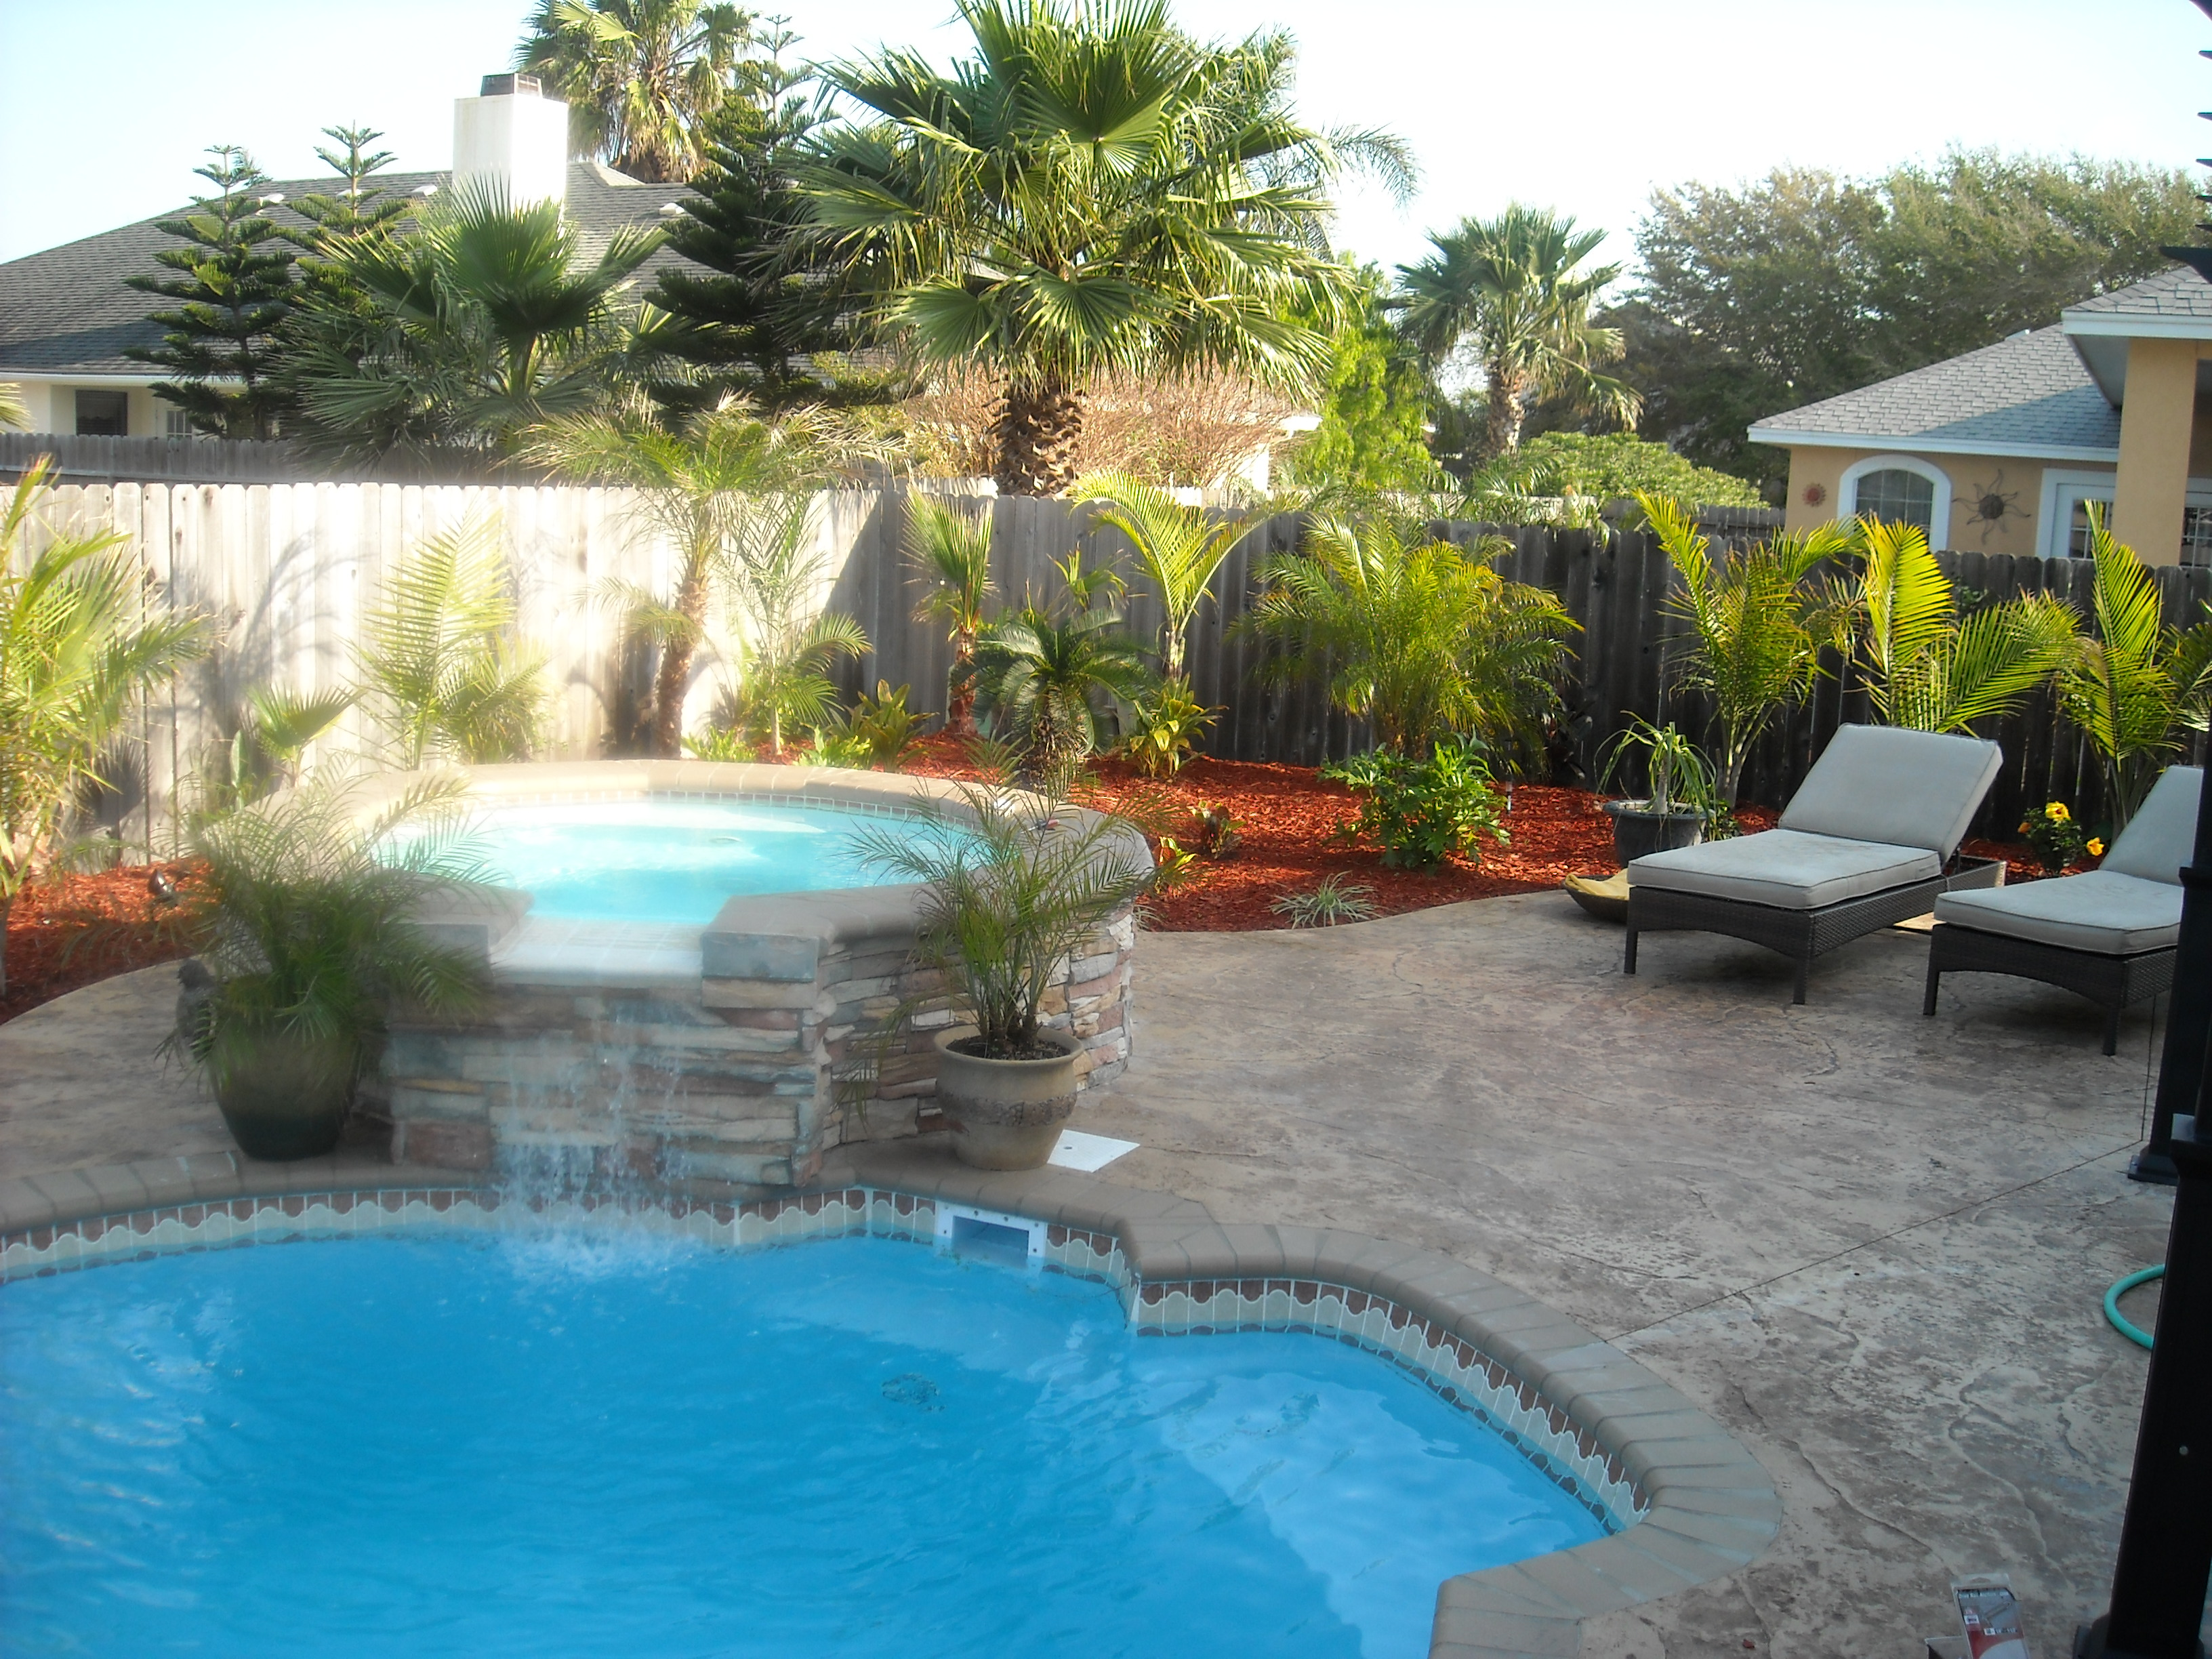 Fiberglass pool with water feature, decorative concrete, and landscaping